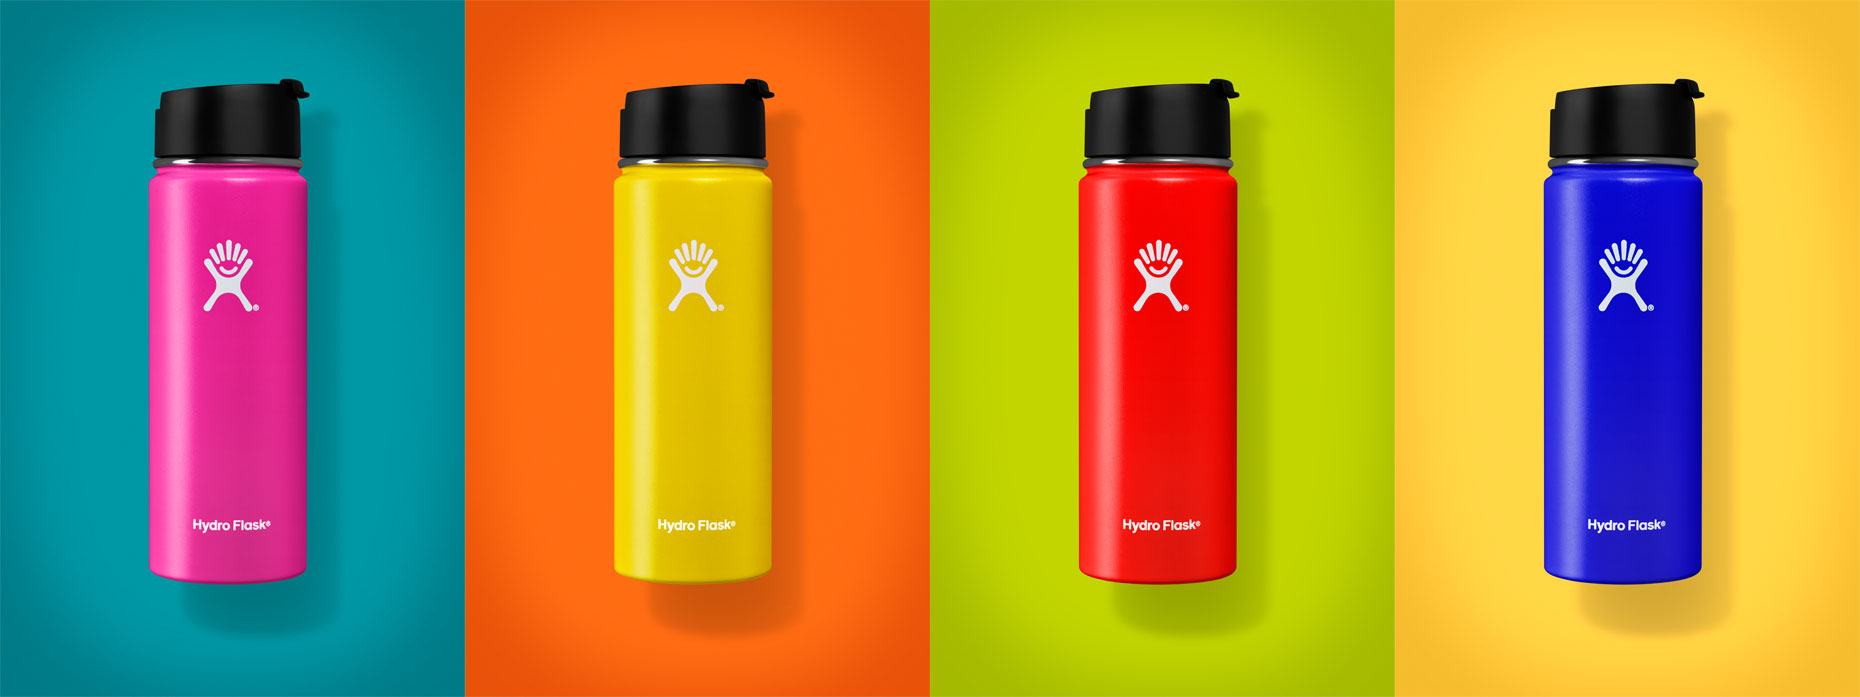 Product Photography Still Life Hydro Flask Multi Color Study in Studio Denver